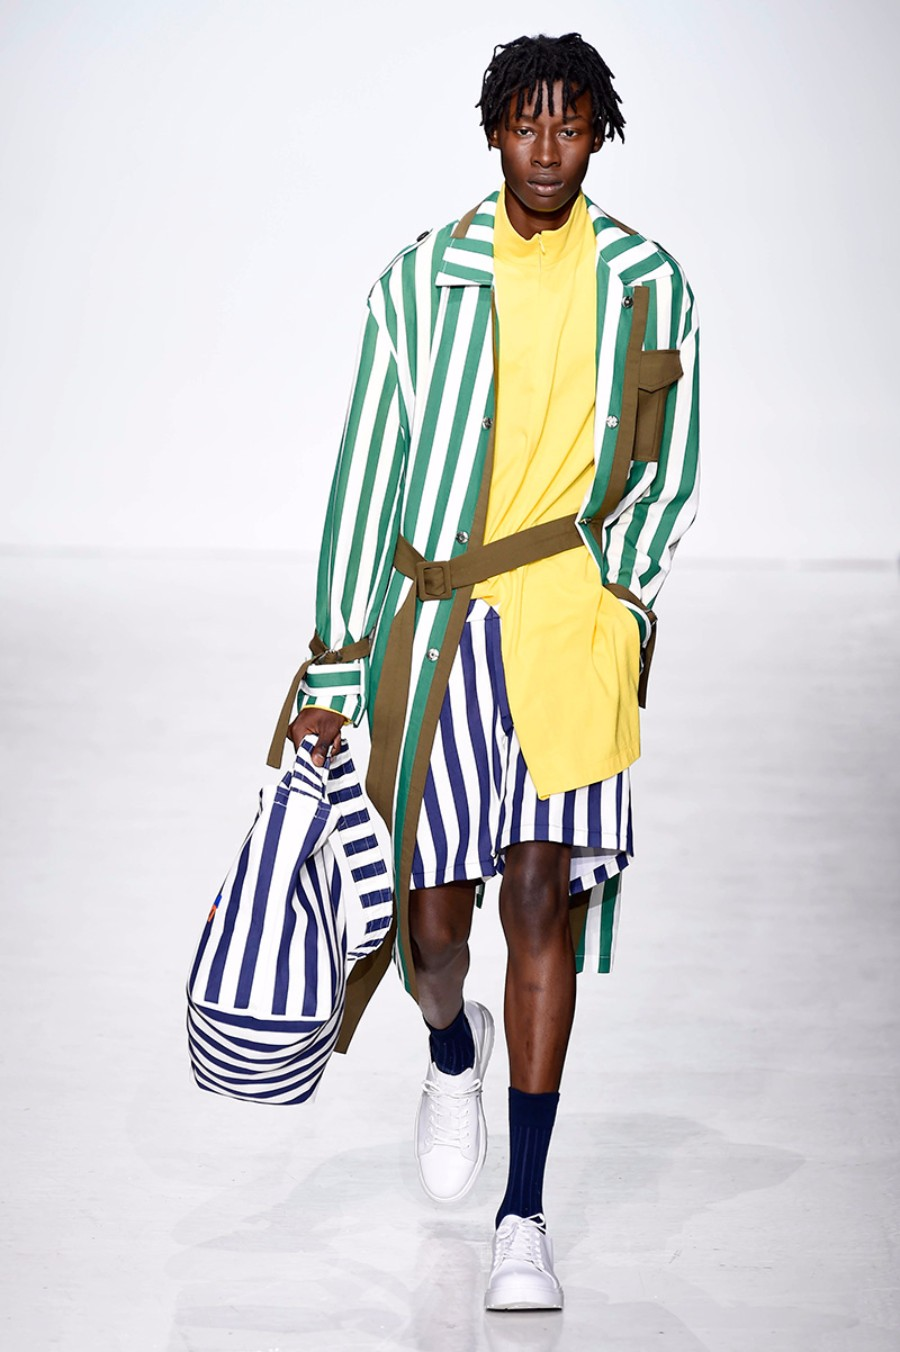 NYFWM: General Idea Spring/Summer 2018 Collection